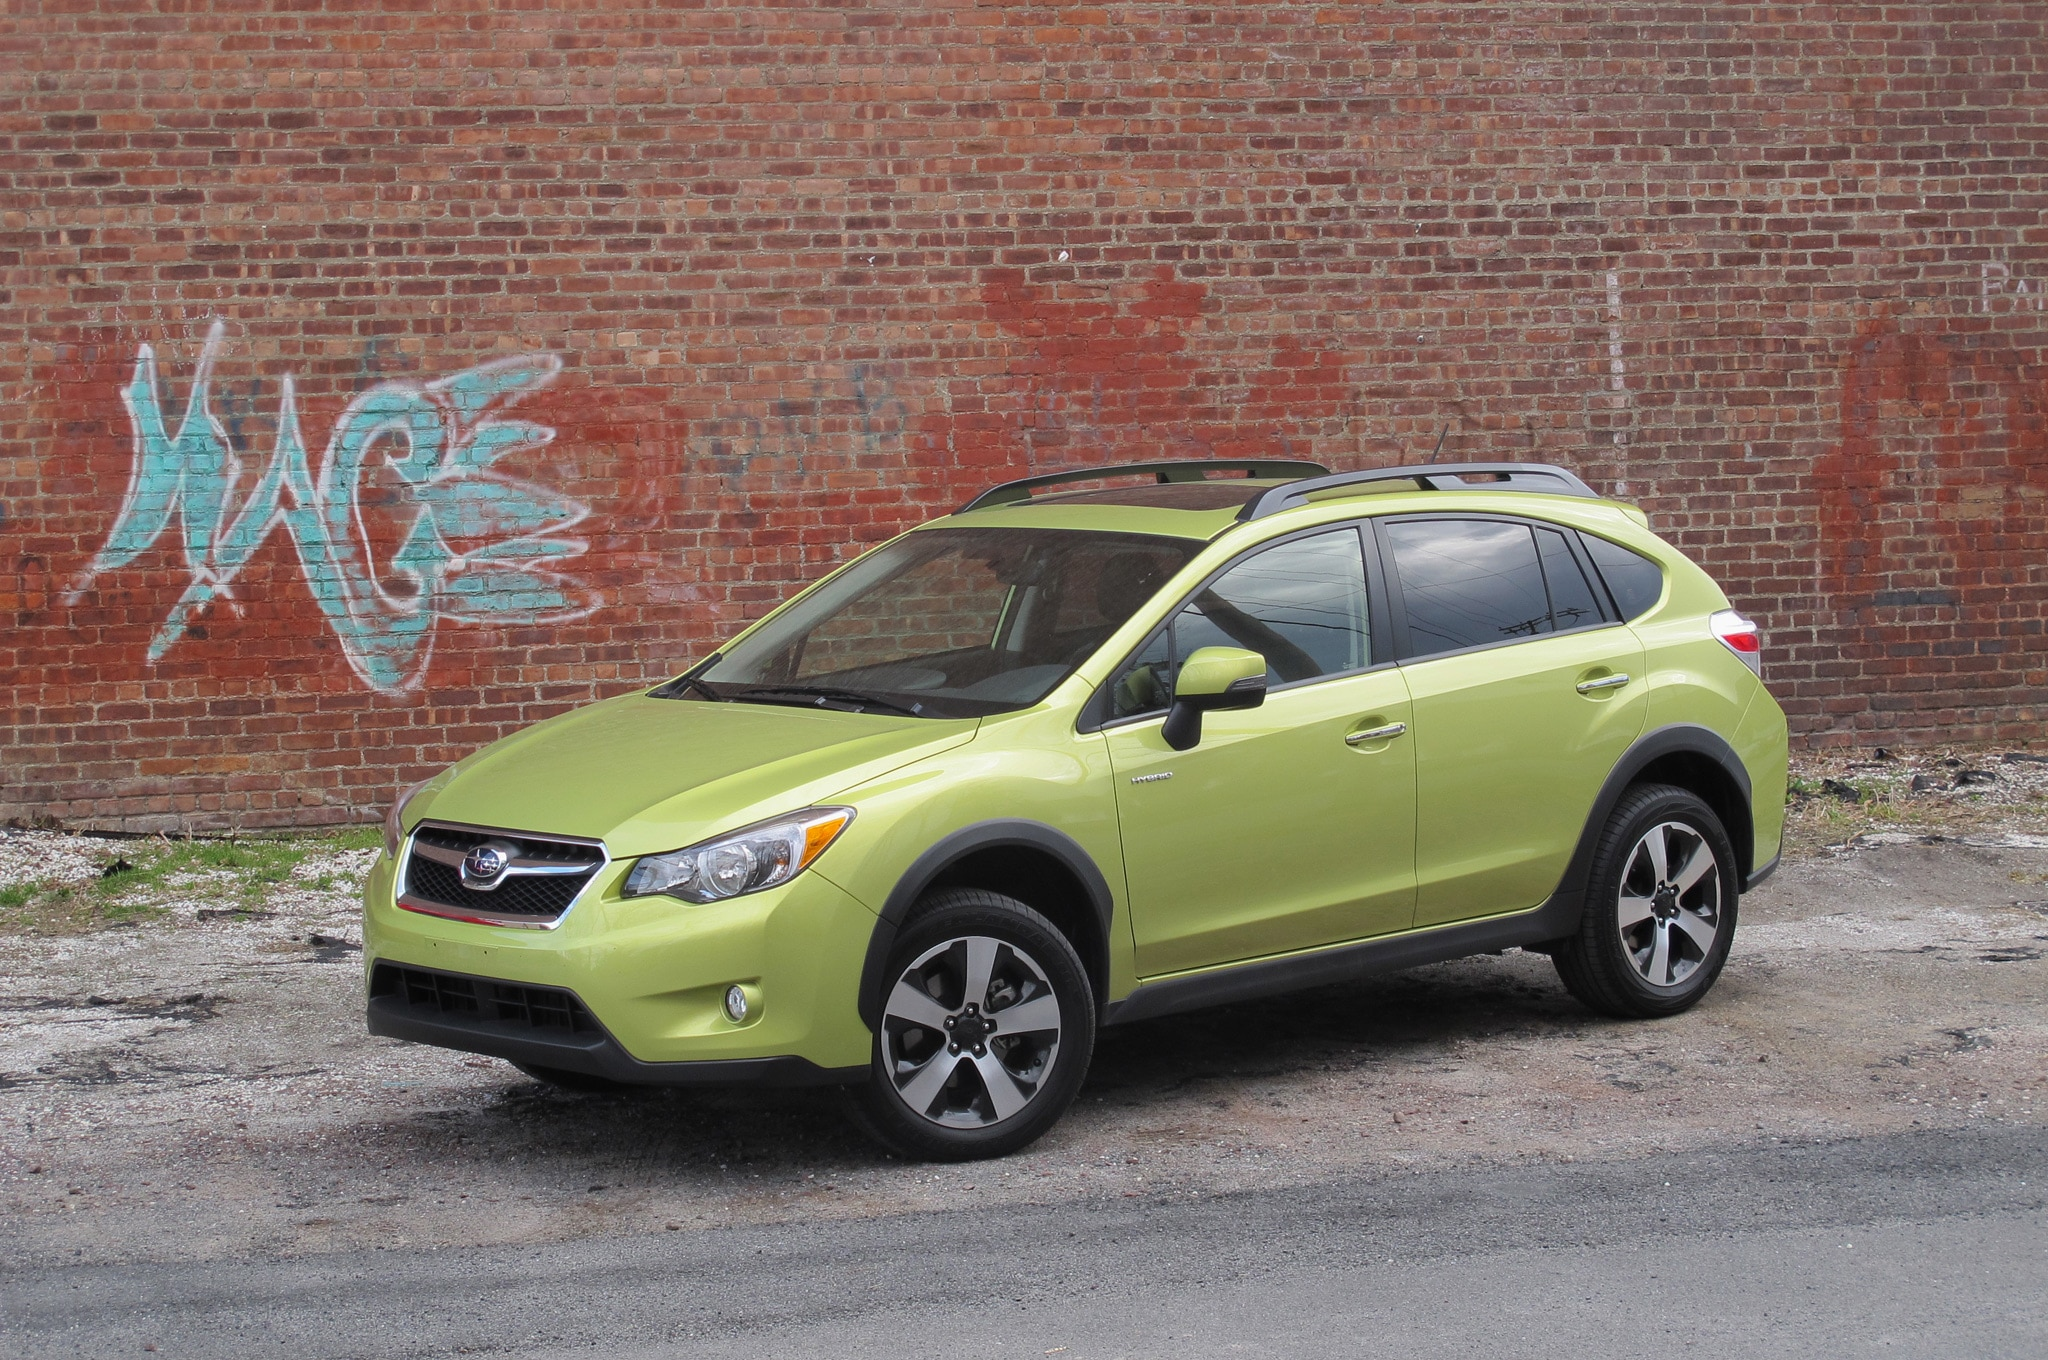 2014 Subaru Xv Crosstrek Hybrid Around The Block